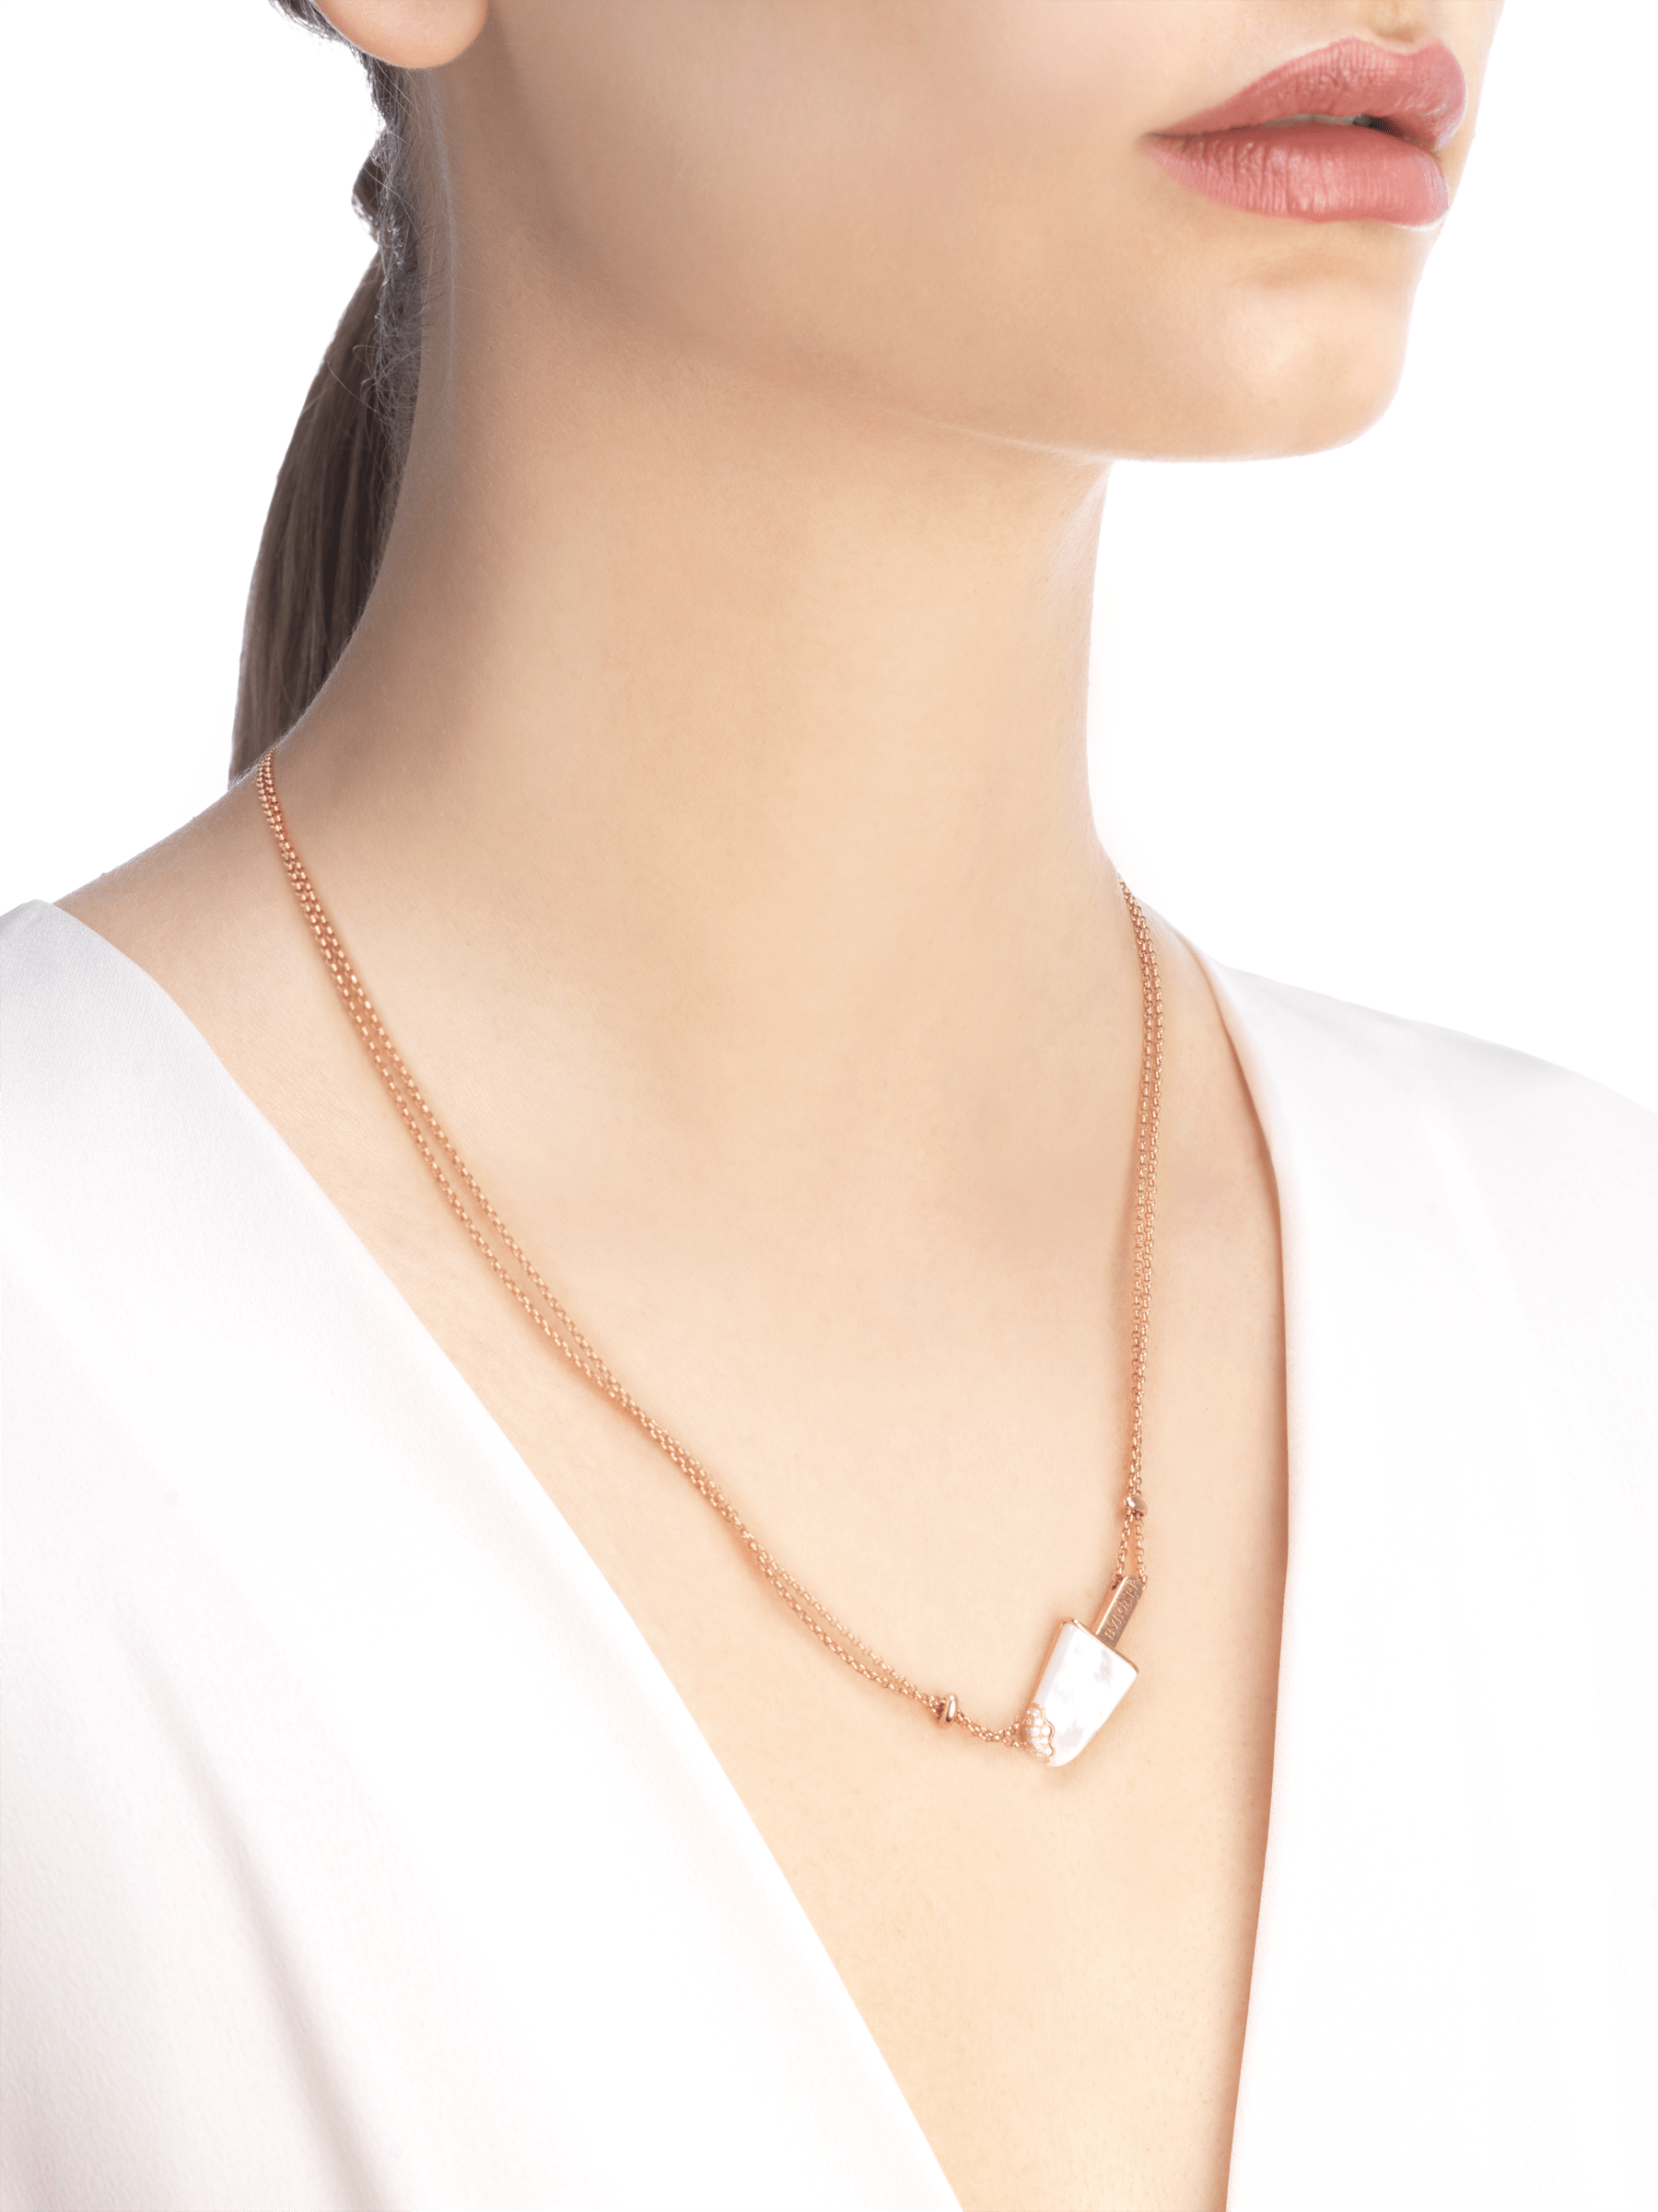 BVLGARI BVLGARI Gelati 18 kt rose gold necklace set with mother-of-pearl and pavé diamonds 356132 image 3